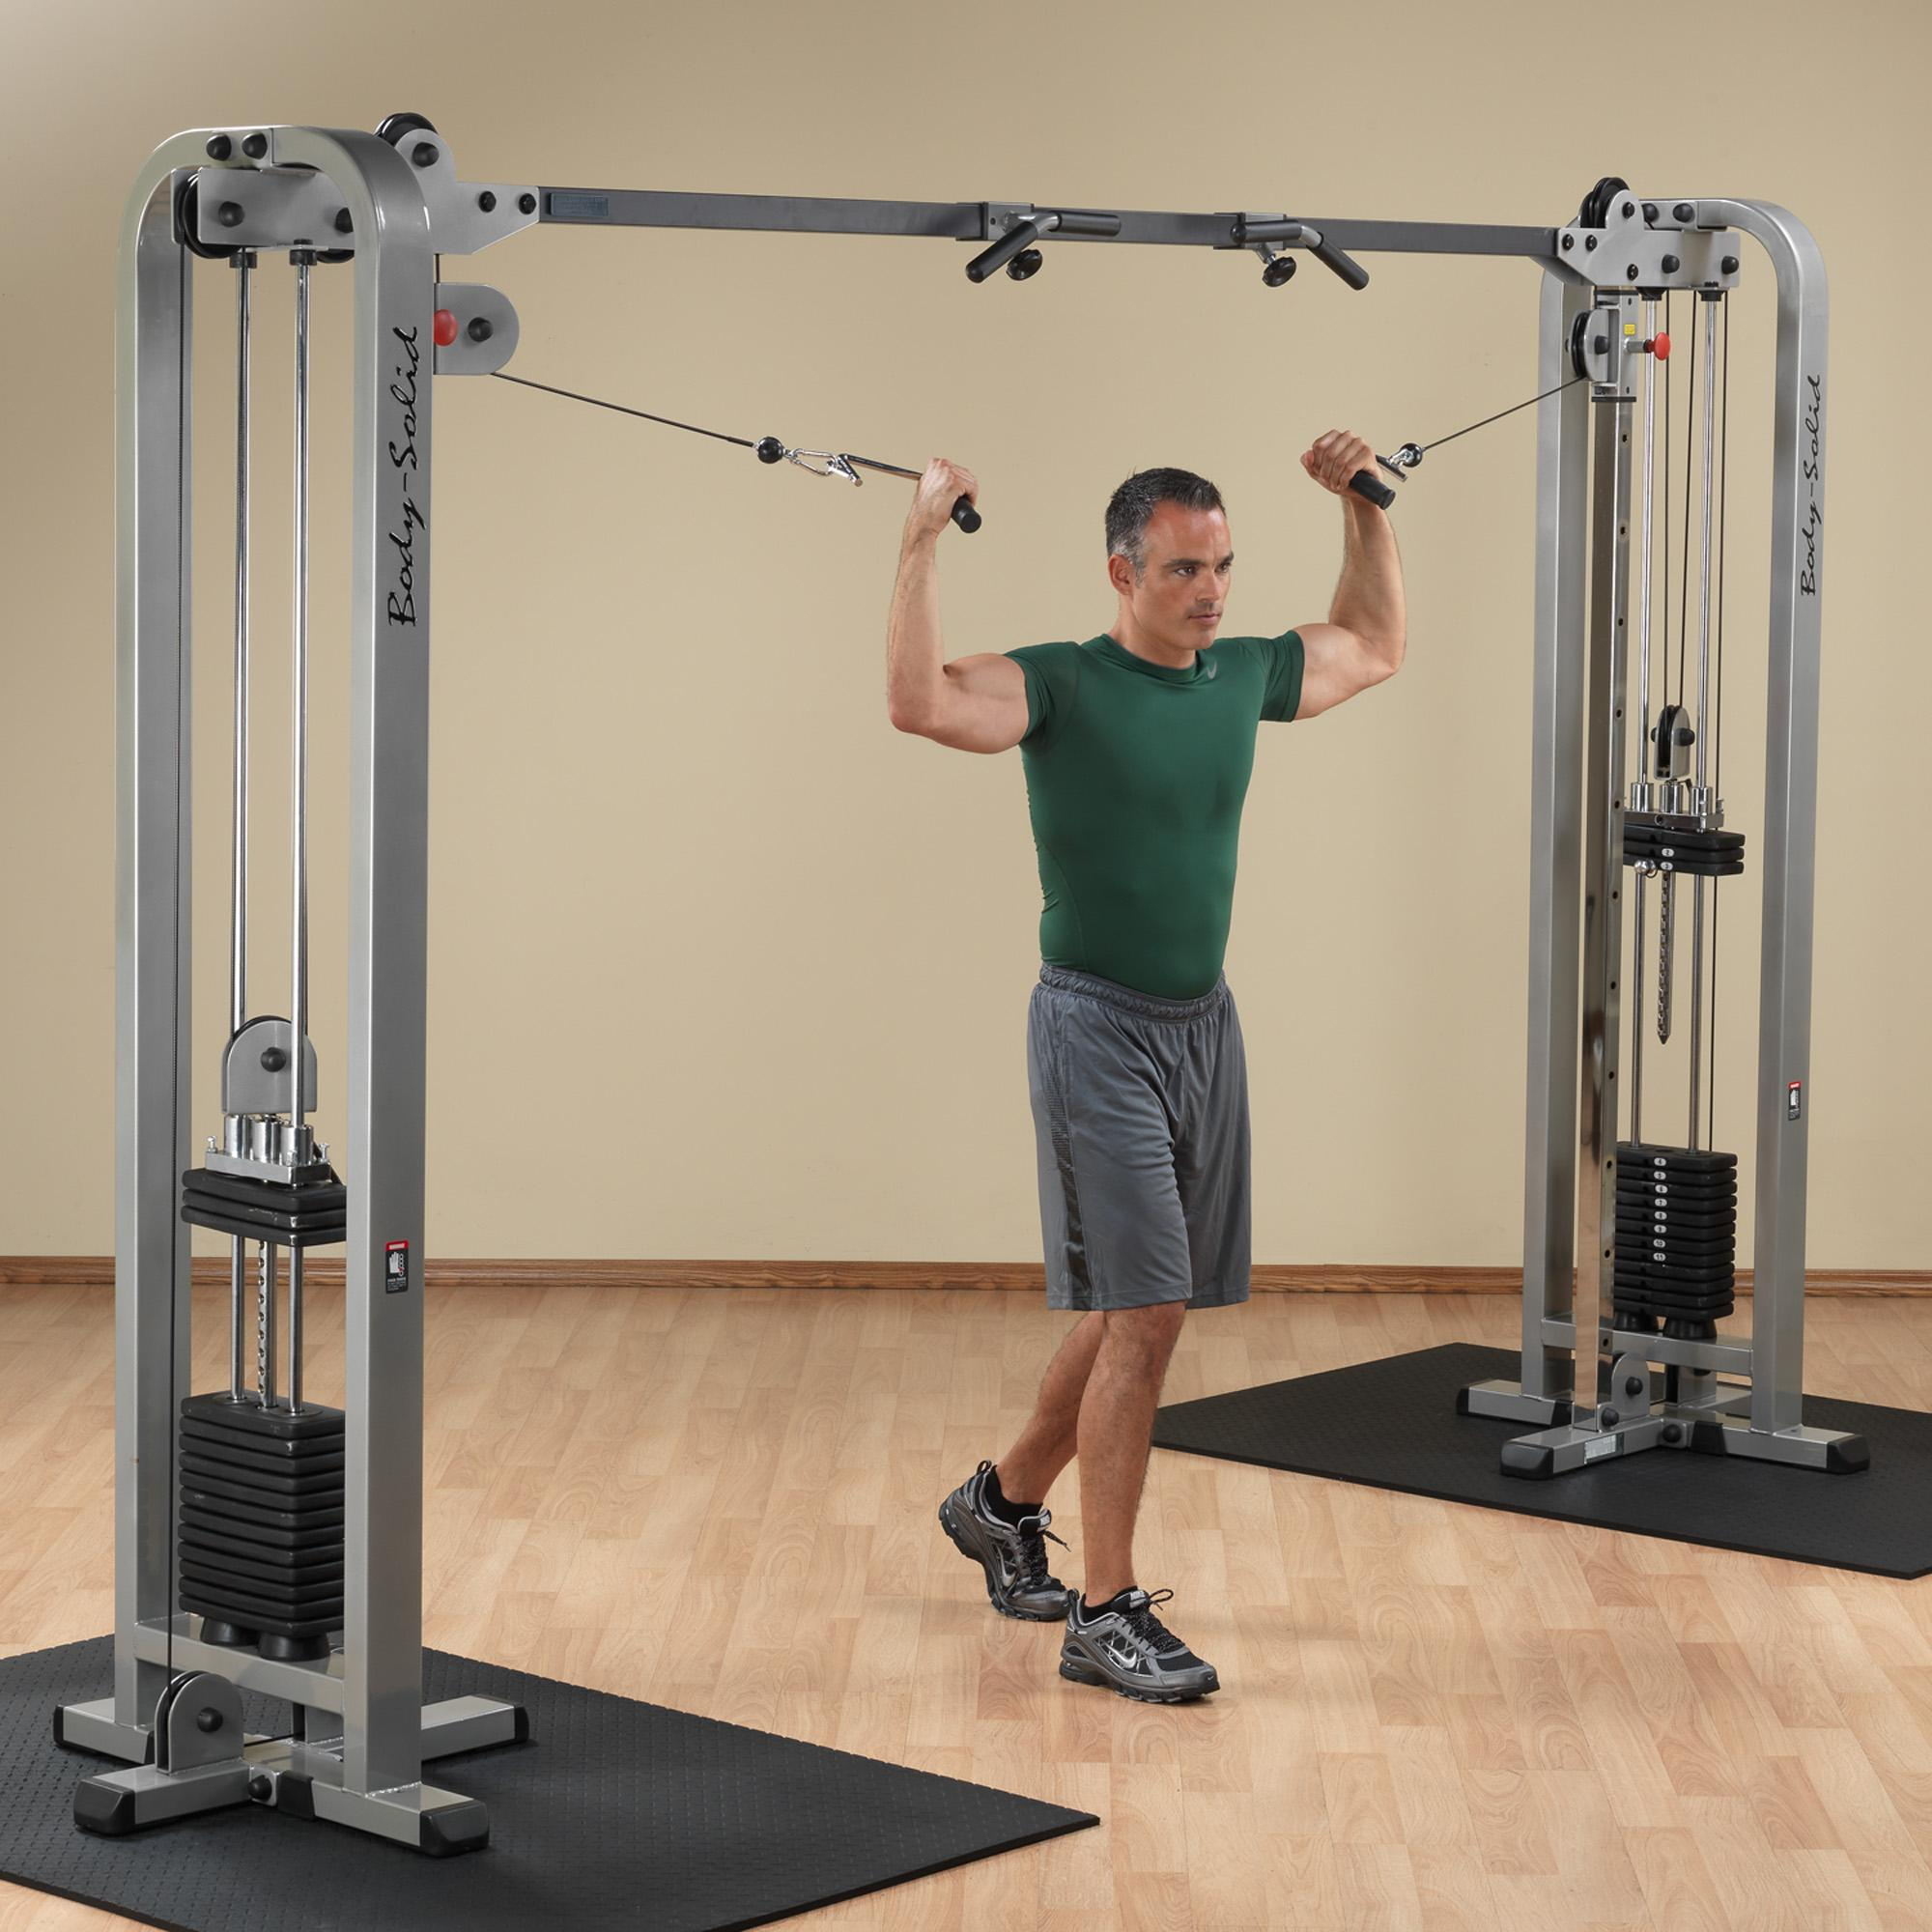 Gymnastics Equipment In Canada: Body Solid Pro Clubline Cable Crossover, Home Gyms